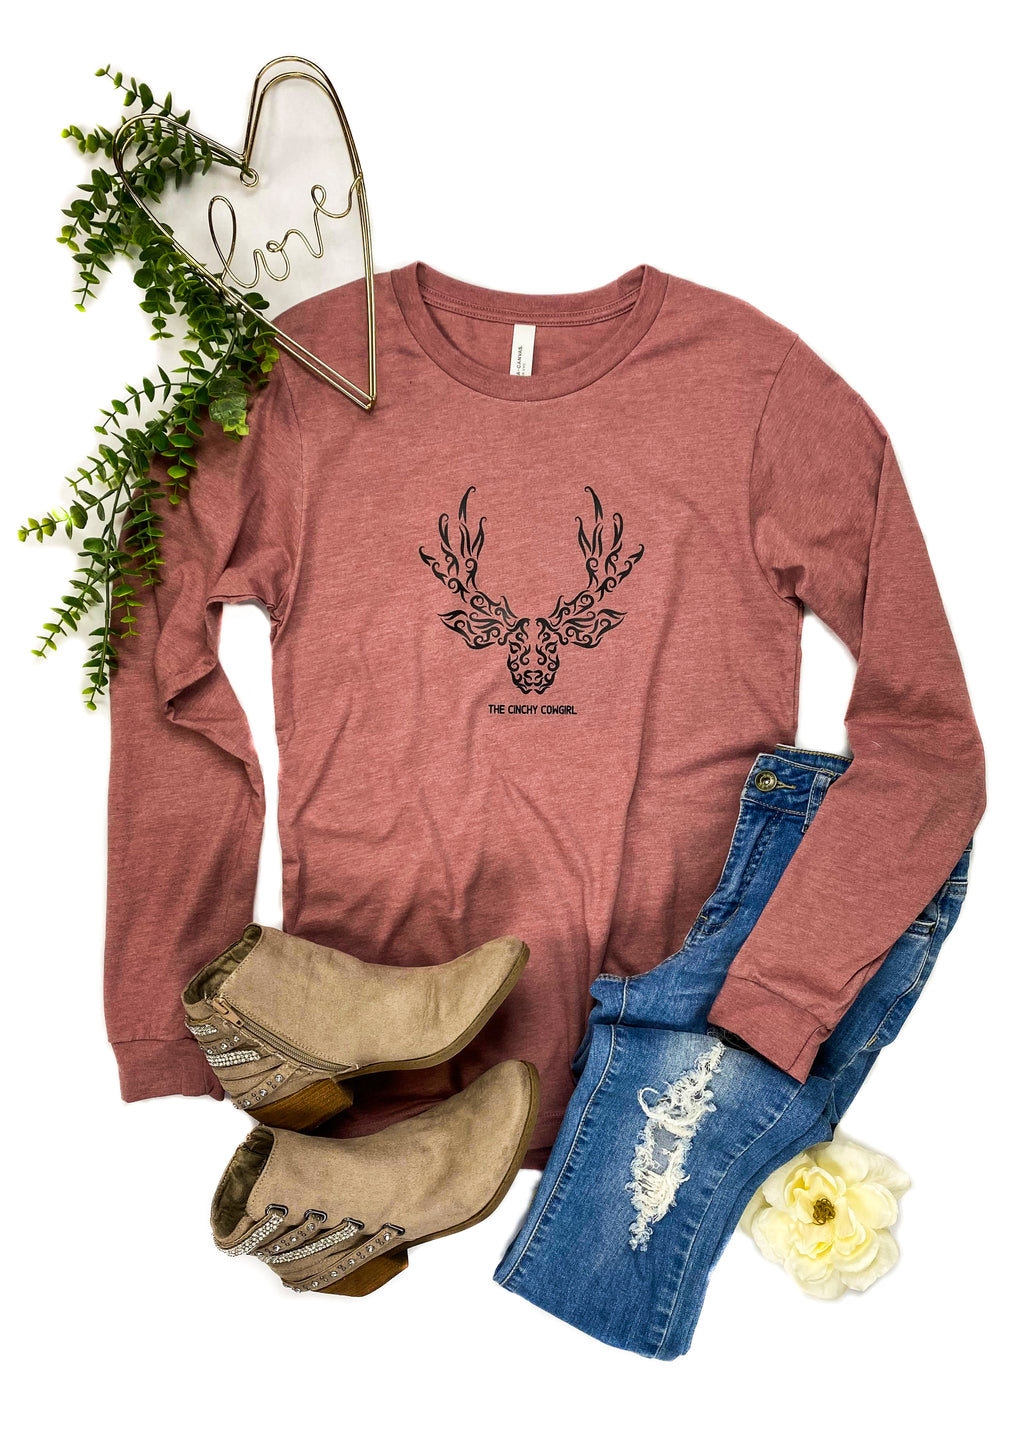 "Mauve Long Sleeve Tee Shirt with Deer Head and 'The Cinchy Cowgirl"" in Black Ink  in the Center of the Tee, Laid Flat on White Surface with Denim Jeans, Taupe Short Boots and Floral Accents"